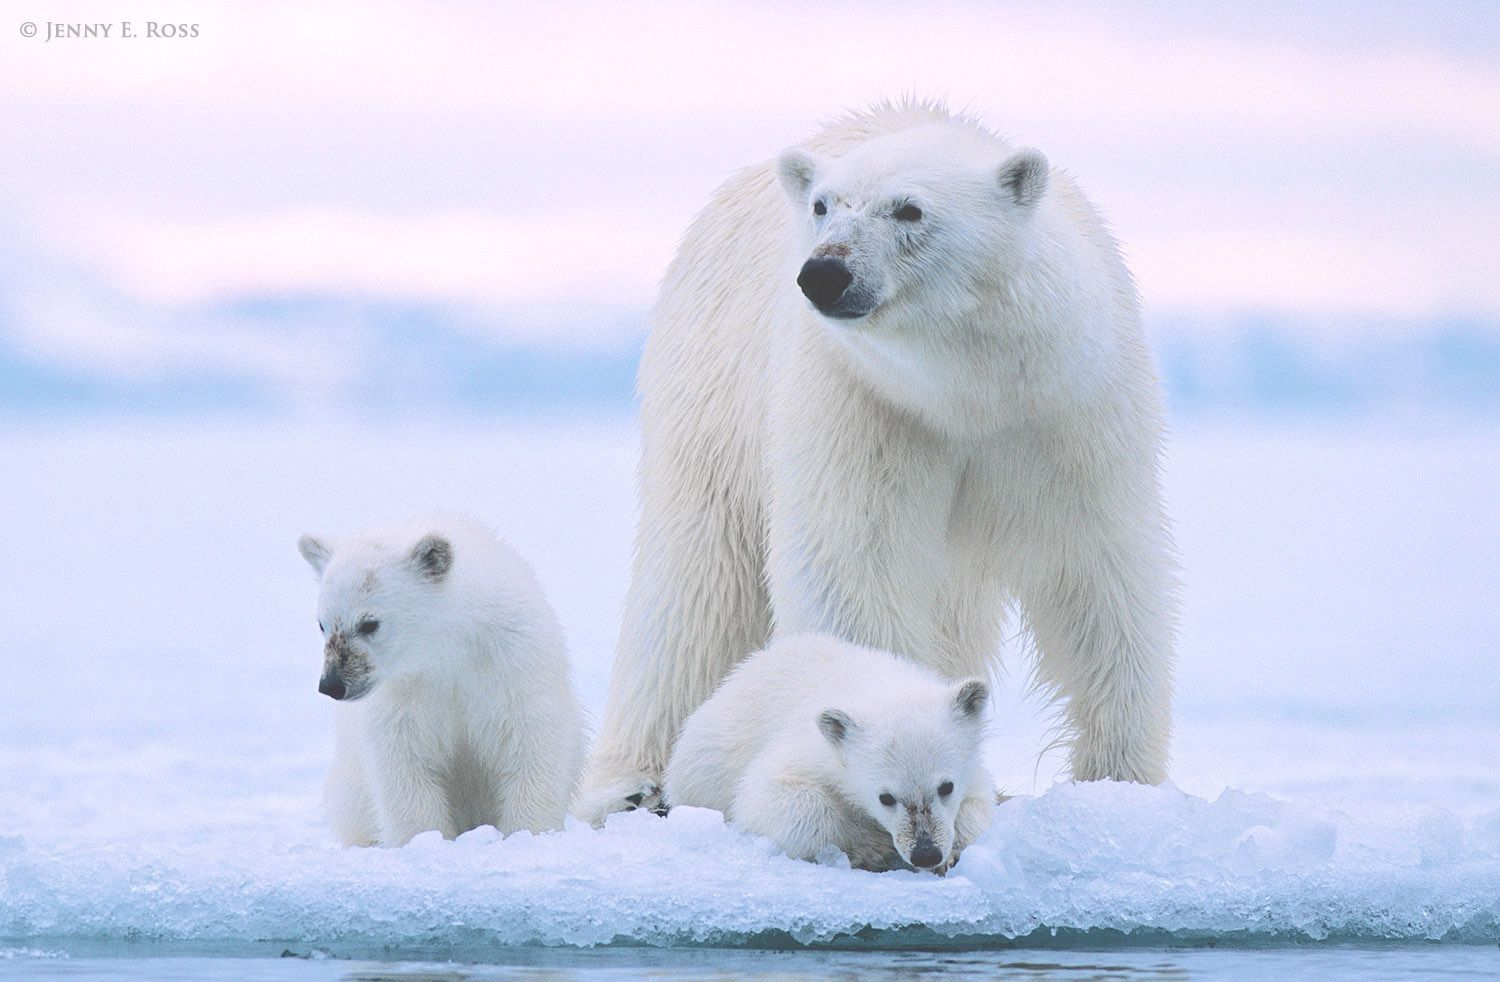 A mother polar bear and her twin cubs (about 6 months old) at the edge of sea ice in a fjord.